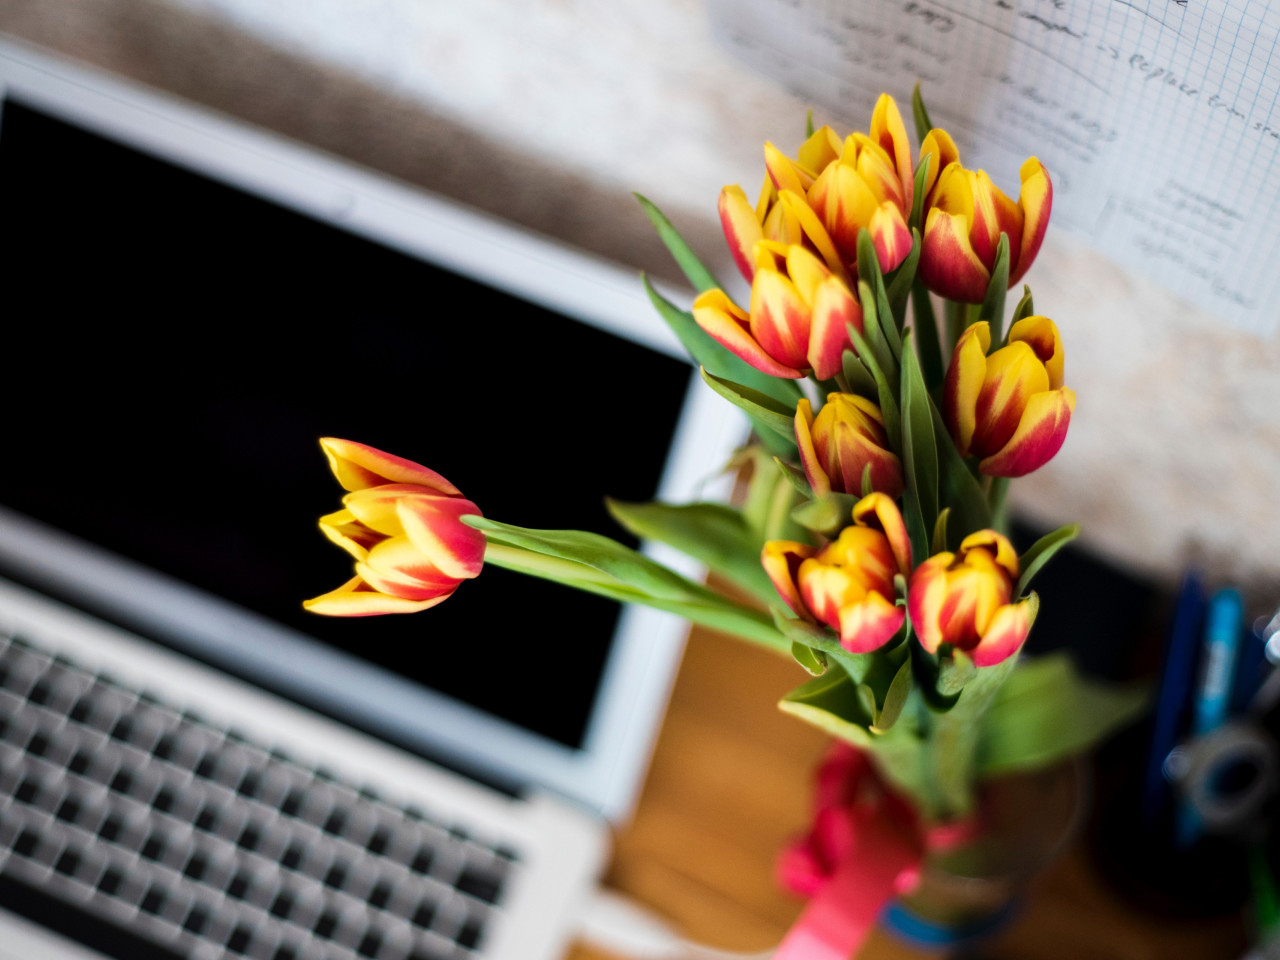 Laptop and tulips bouquet wallpaper 1280x960